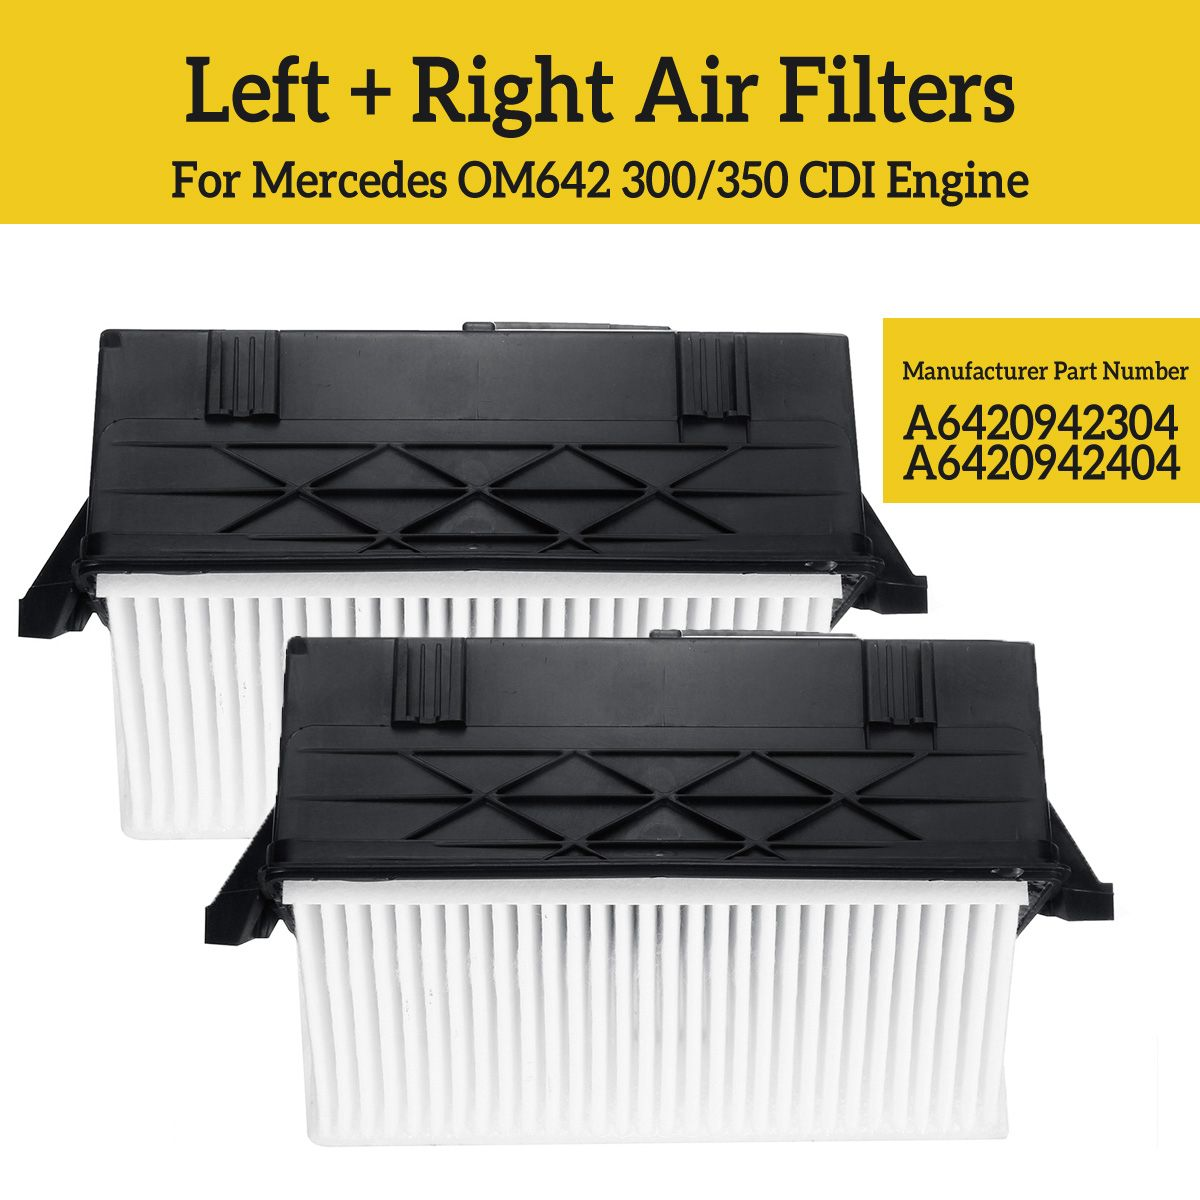 2pcs Left+ Right Air Filters For Mercedes 6420940000 A6420940000 Automobiles Filters(China)